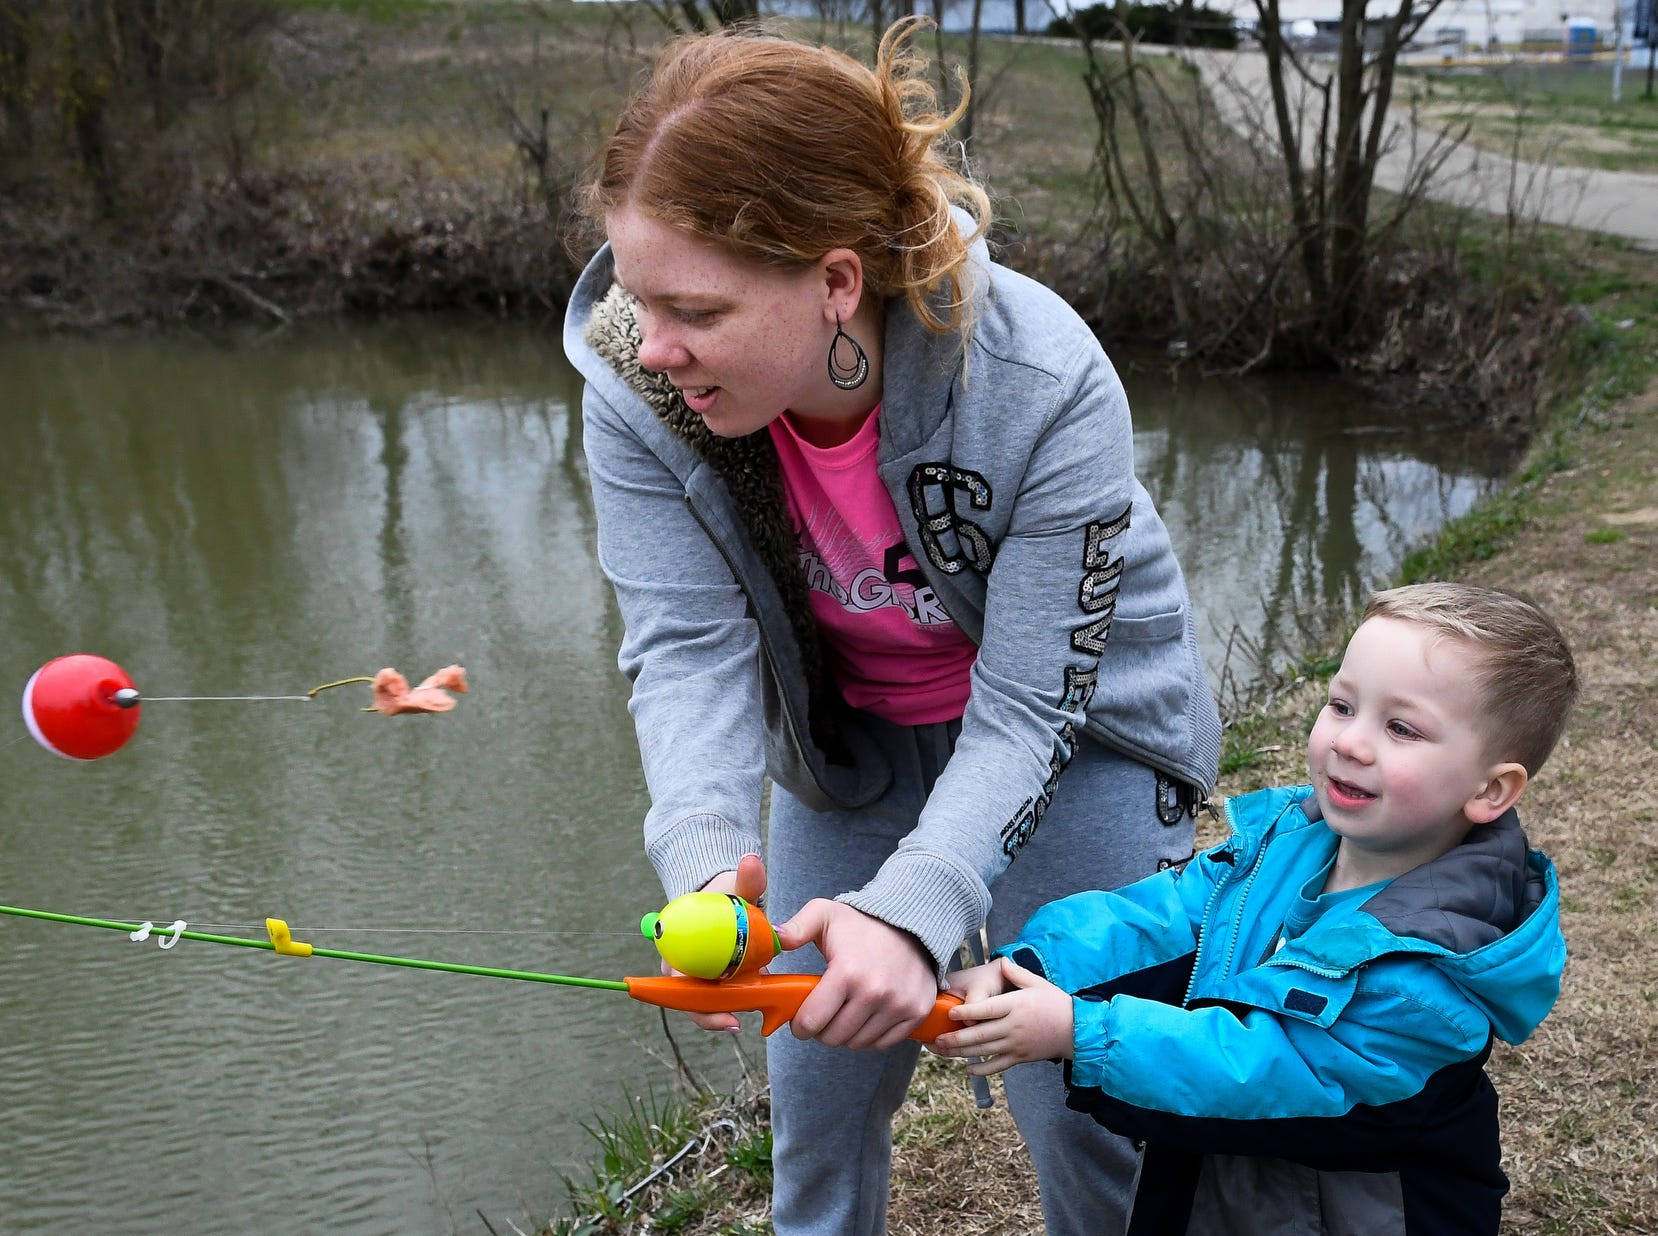 Mastering the art of the cast, Yesenia Deleon helps Kayden Kress, three years-old, launch his piece of hotdog out into the lake at Evansville's Garvin Park during a last day of spring break family fishing trip, Friday, March 29, 2019.